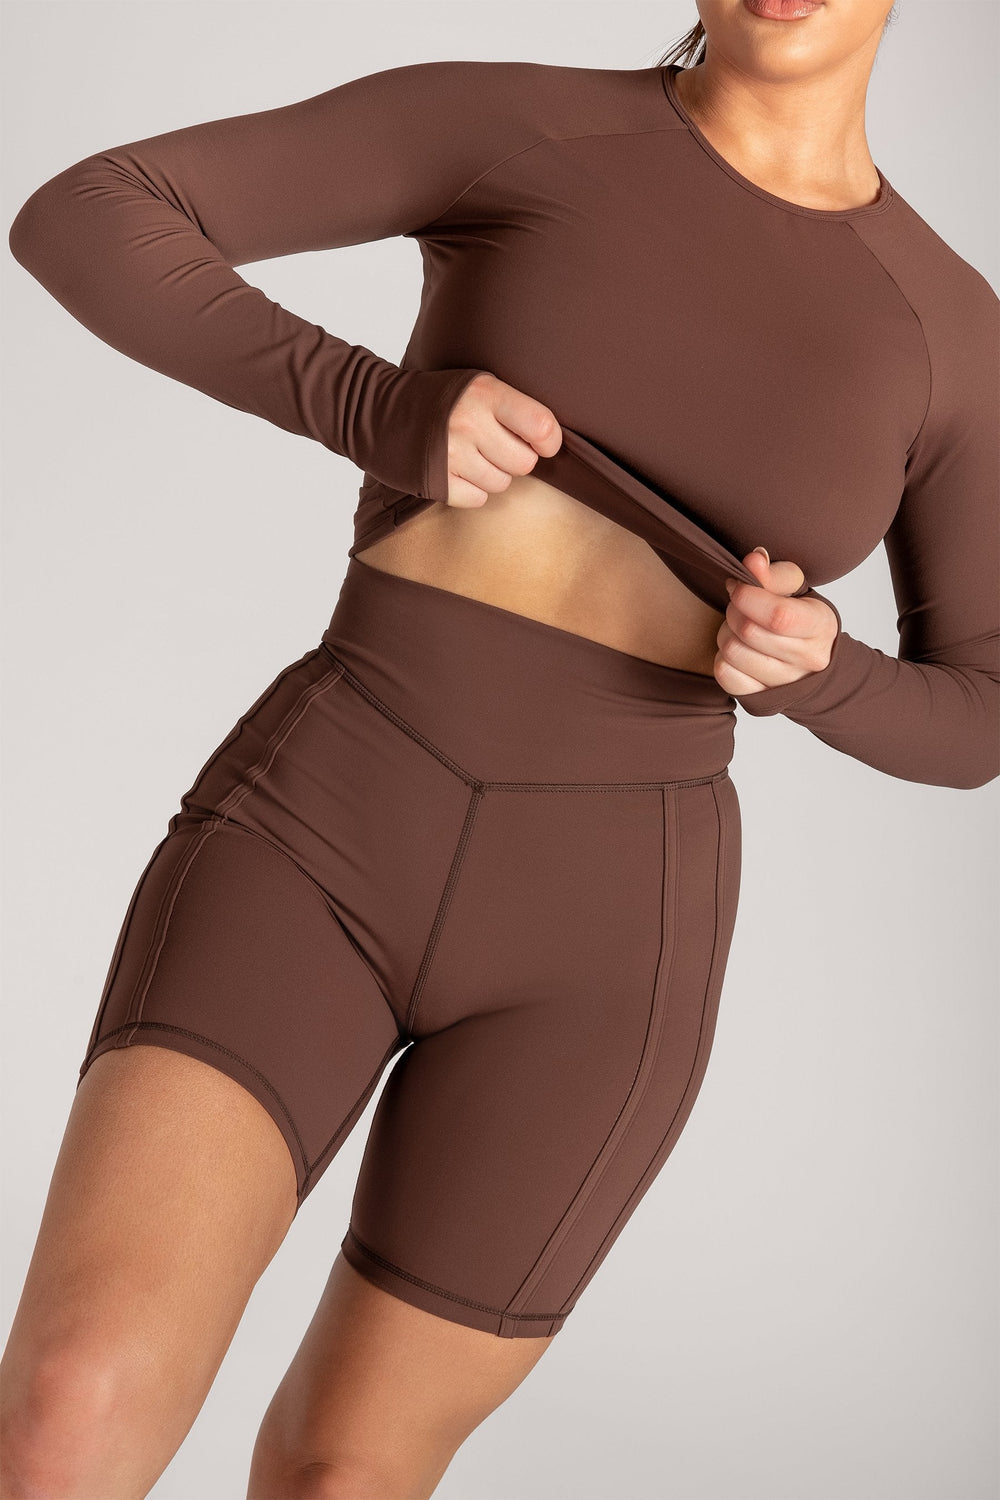 Venus Long Sleeve Crop Top - Chocolate - MESHKI ?id=16078523531339